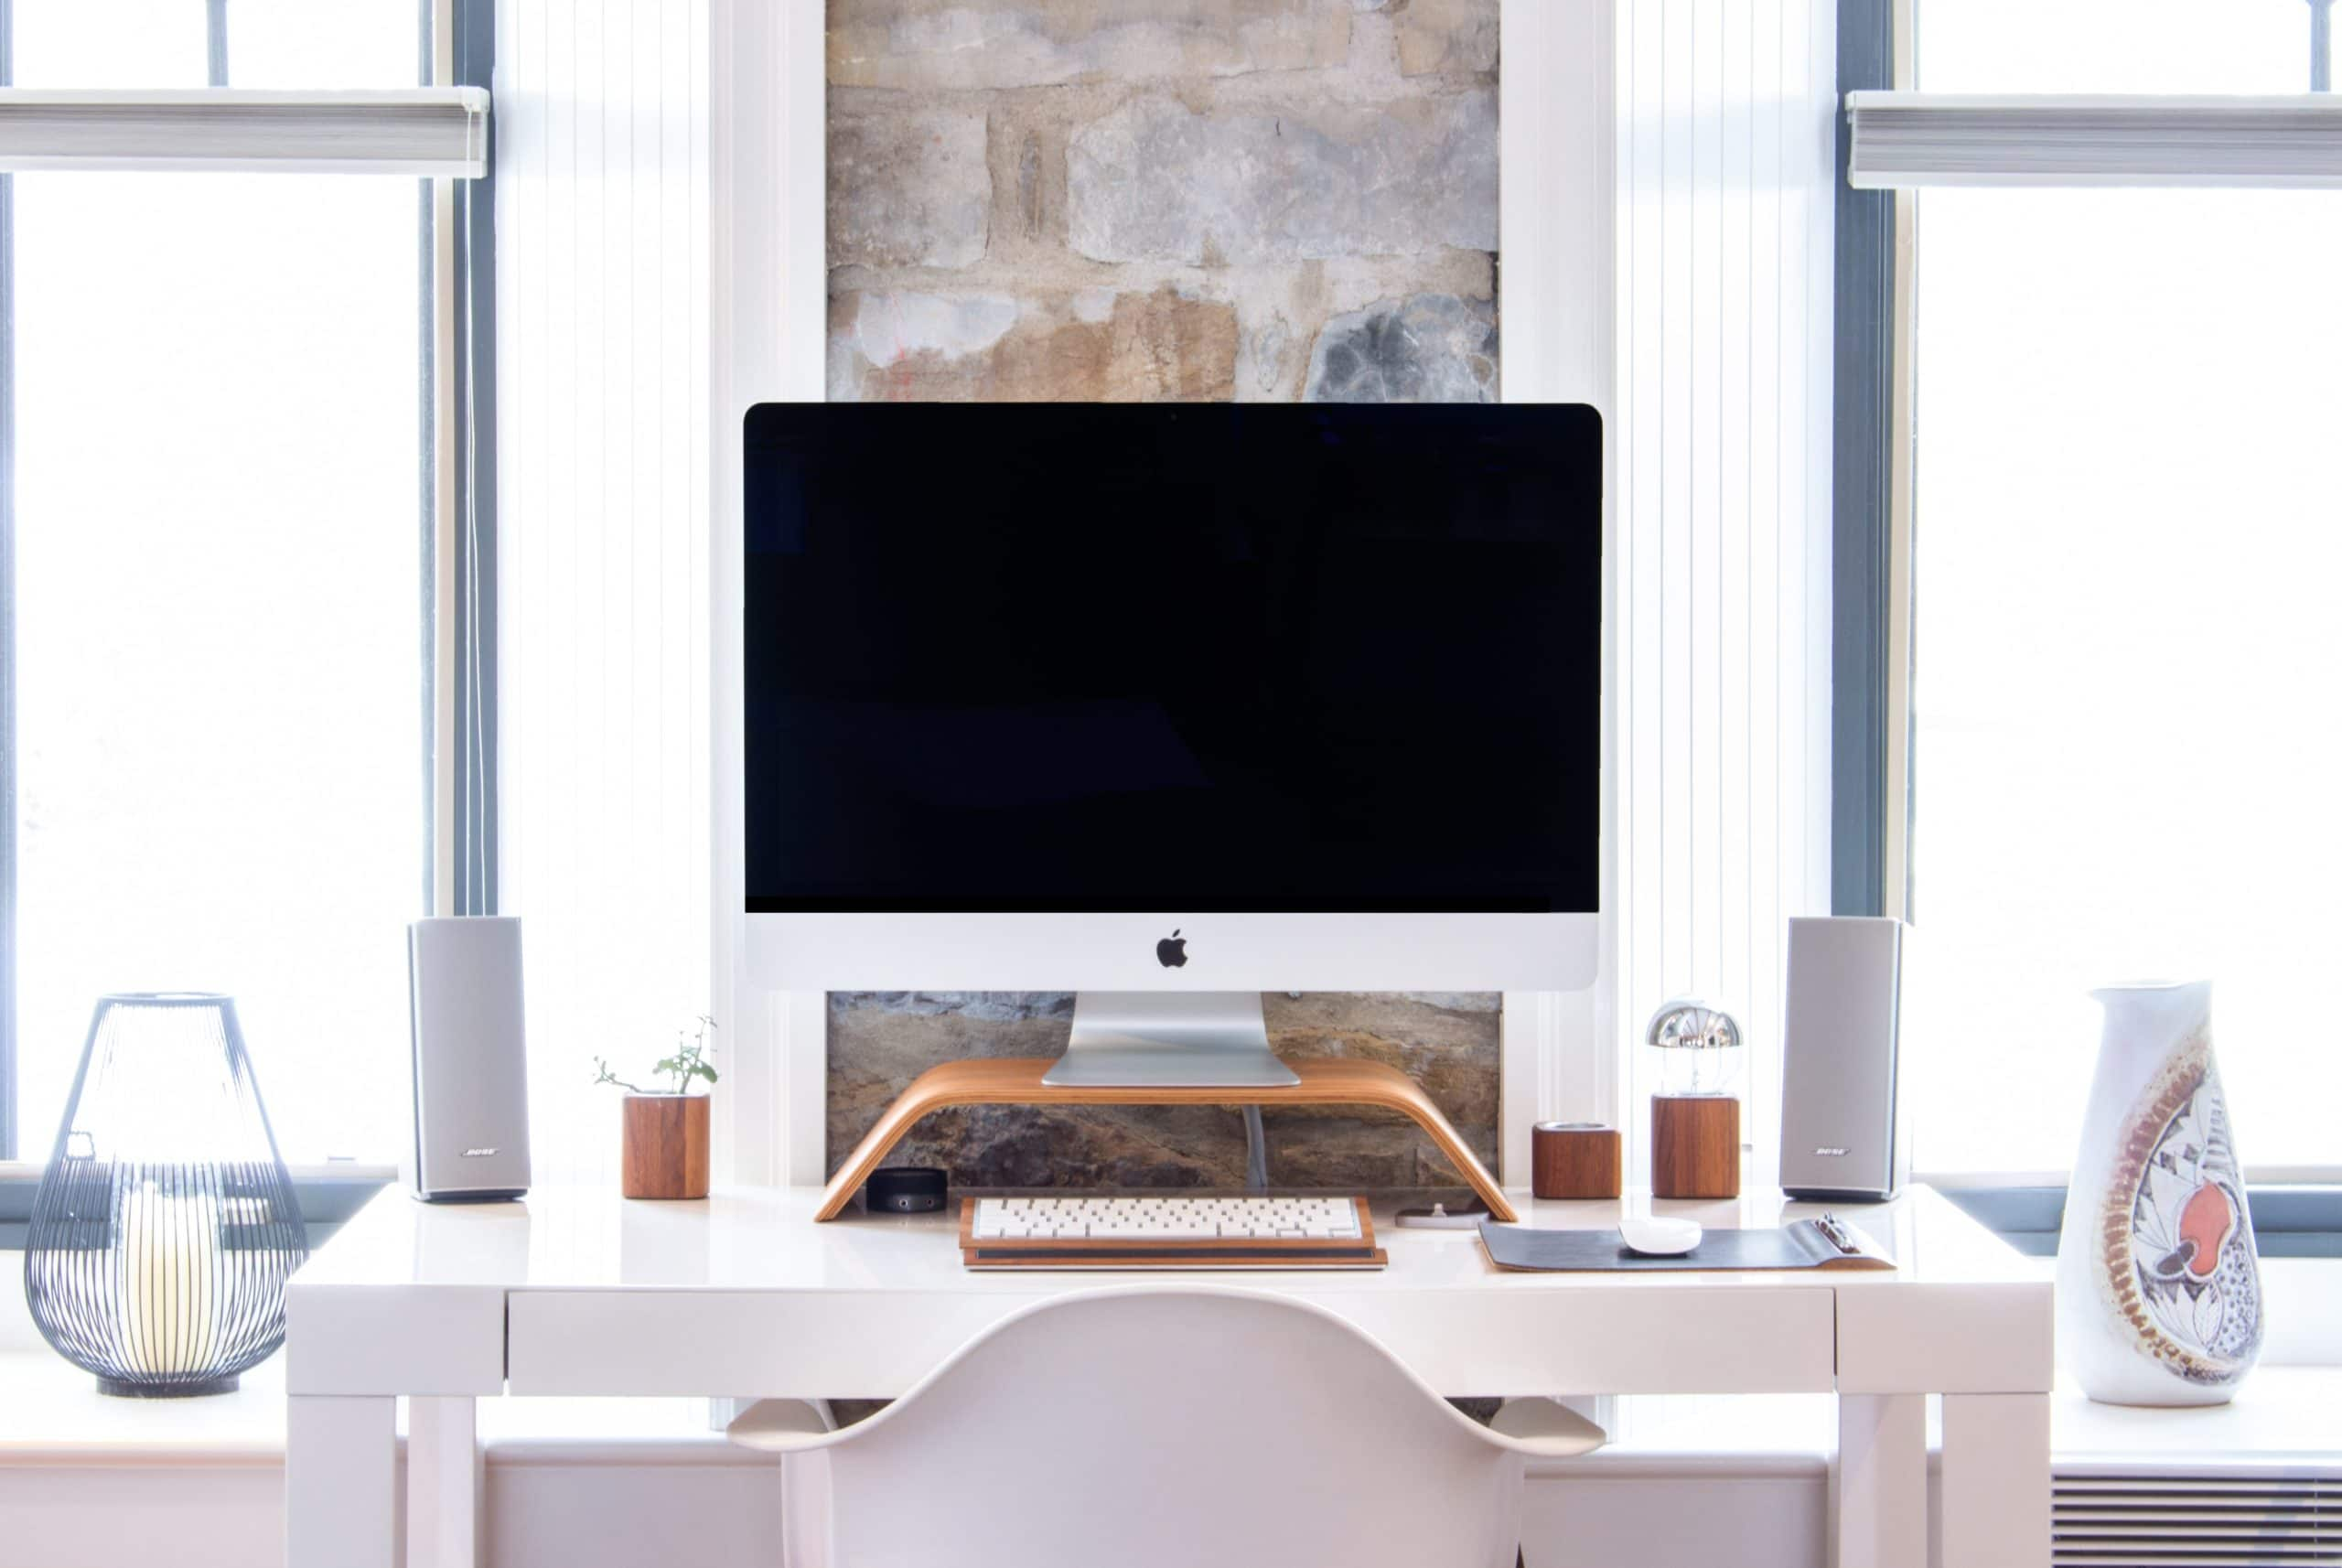 Home Office com iMac na mesa